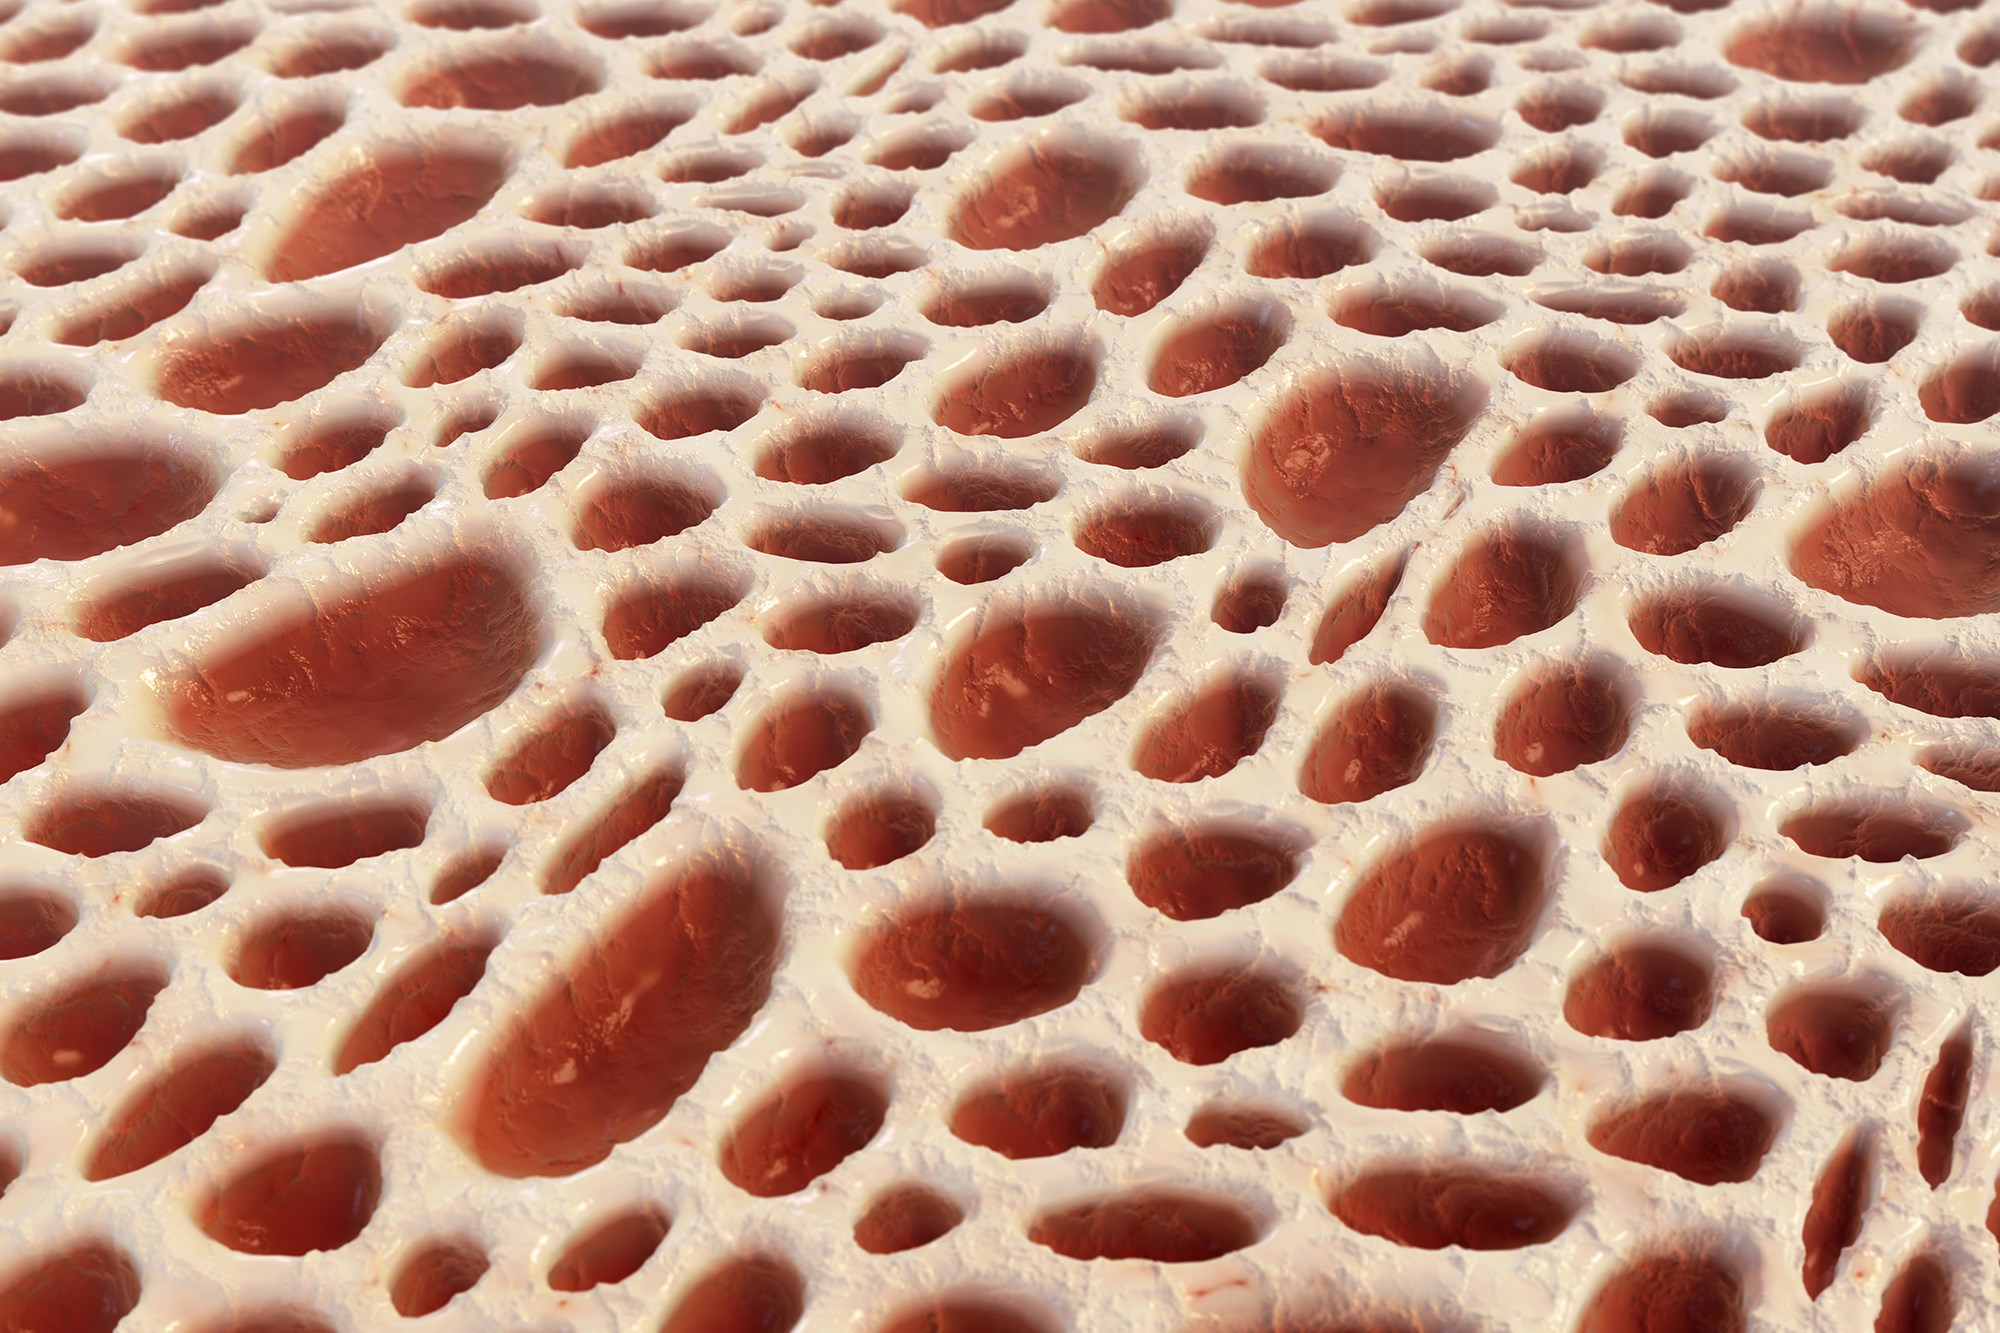 Close-up view of spongy bone and red bone marrow.